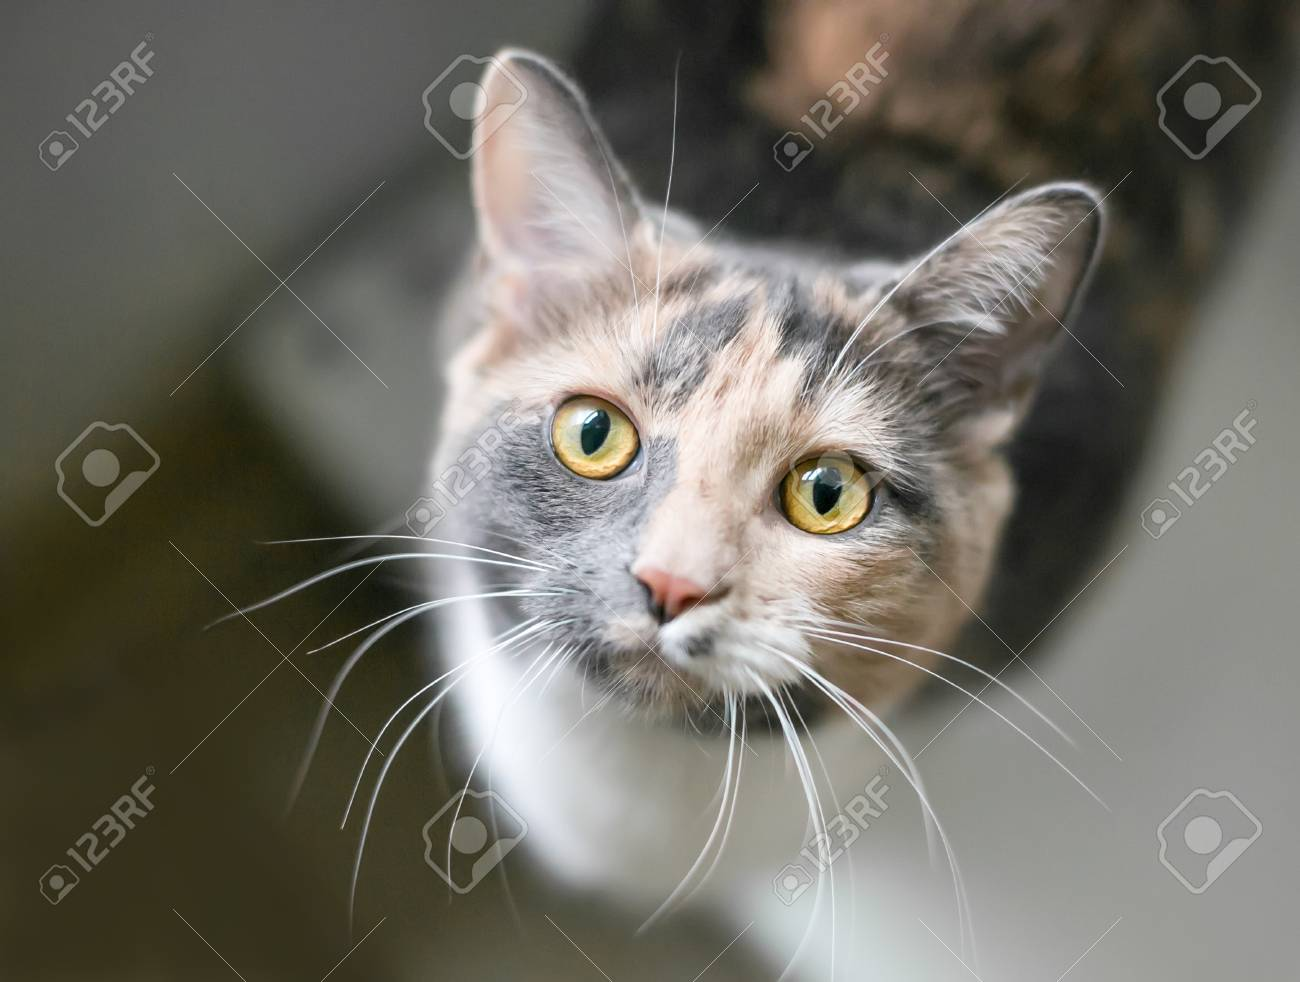 97911505-a-dilute-calico-domestic-shorthair-cat-with-yellow-eyes-looking-up-at-the-camera.jpg